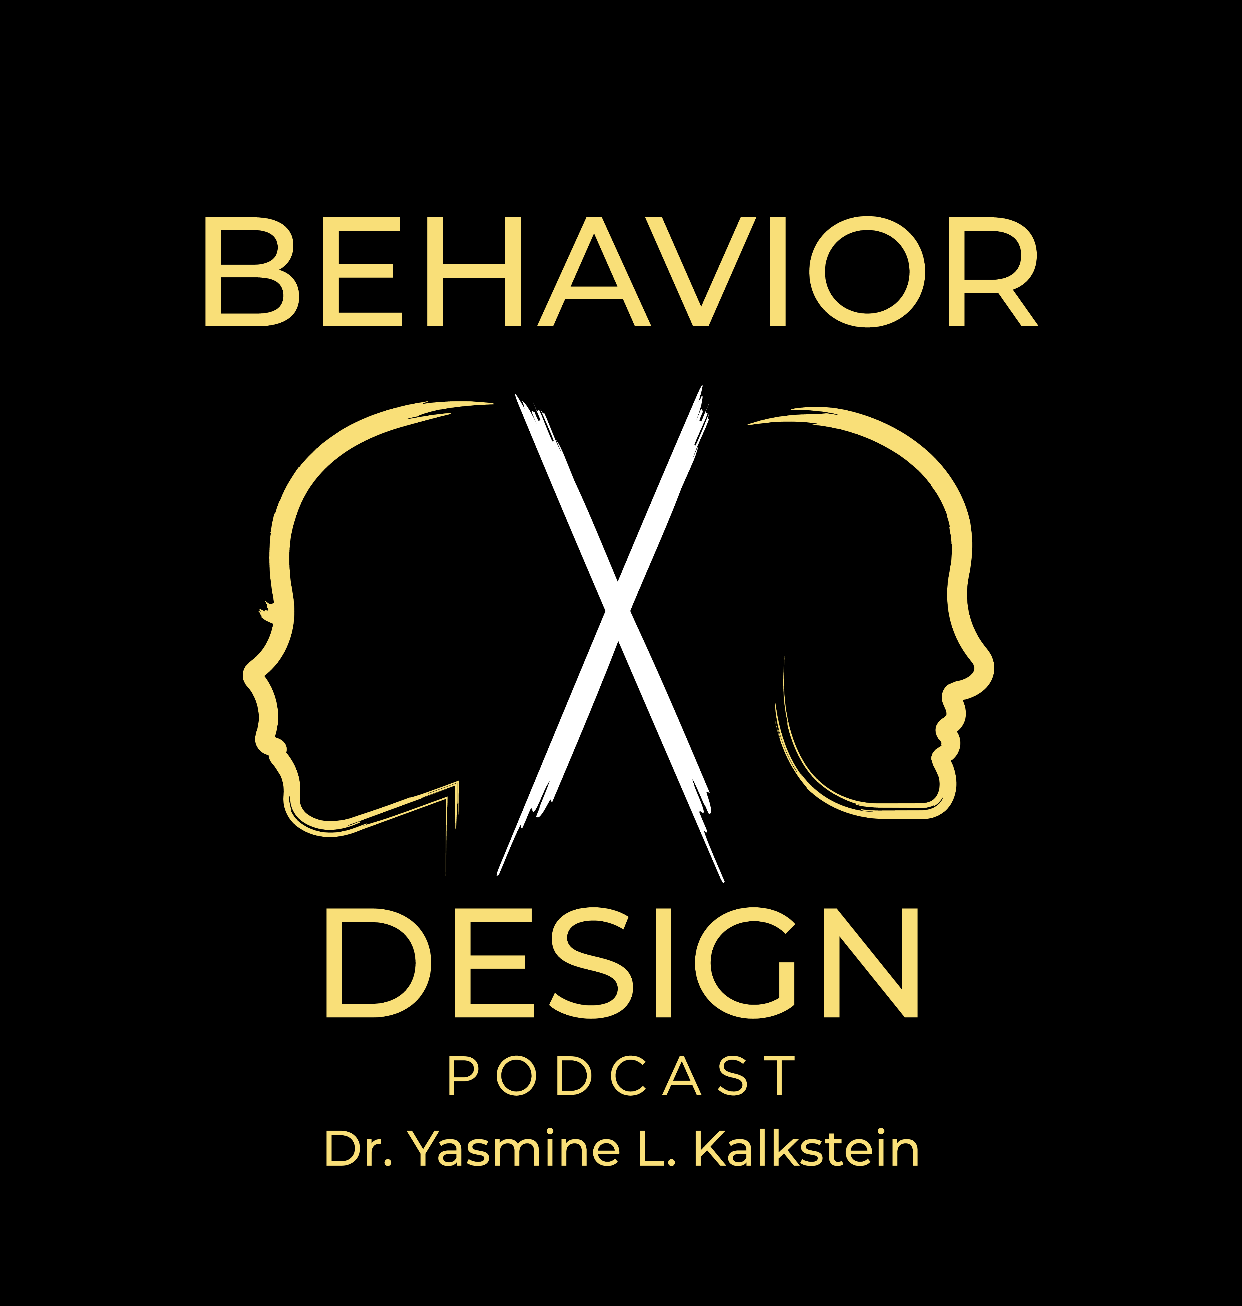 Behavior by Design